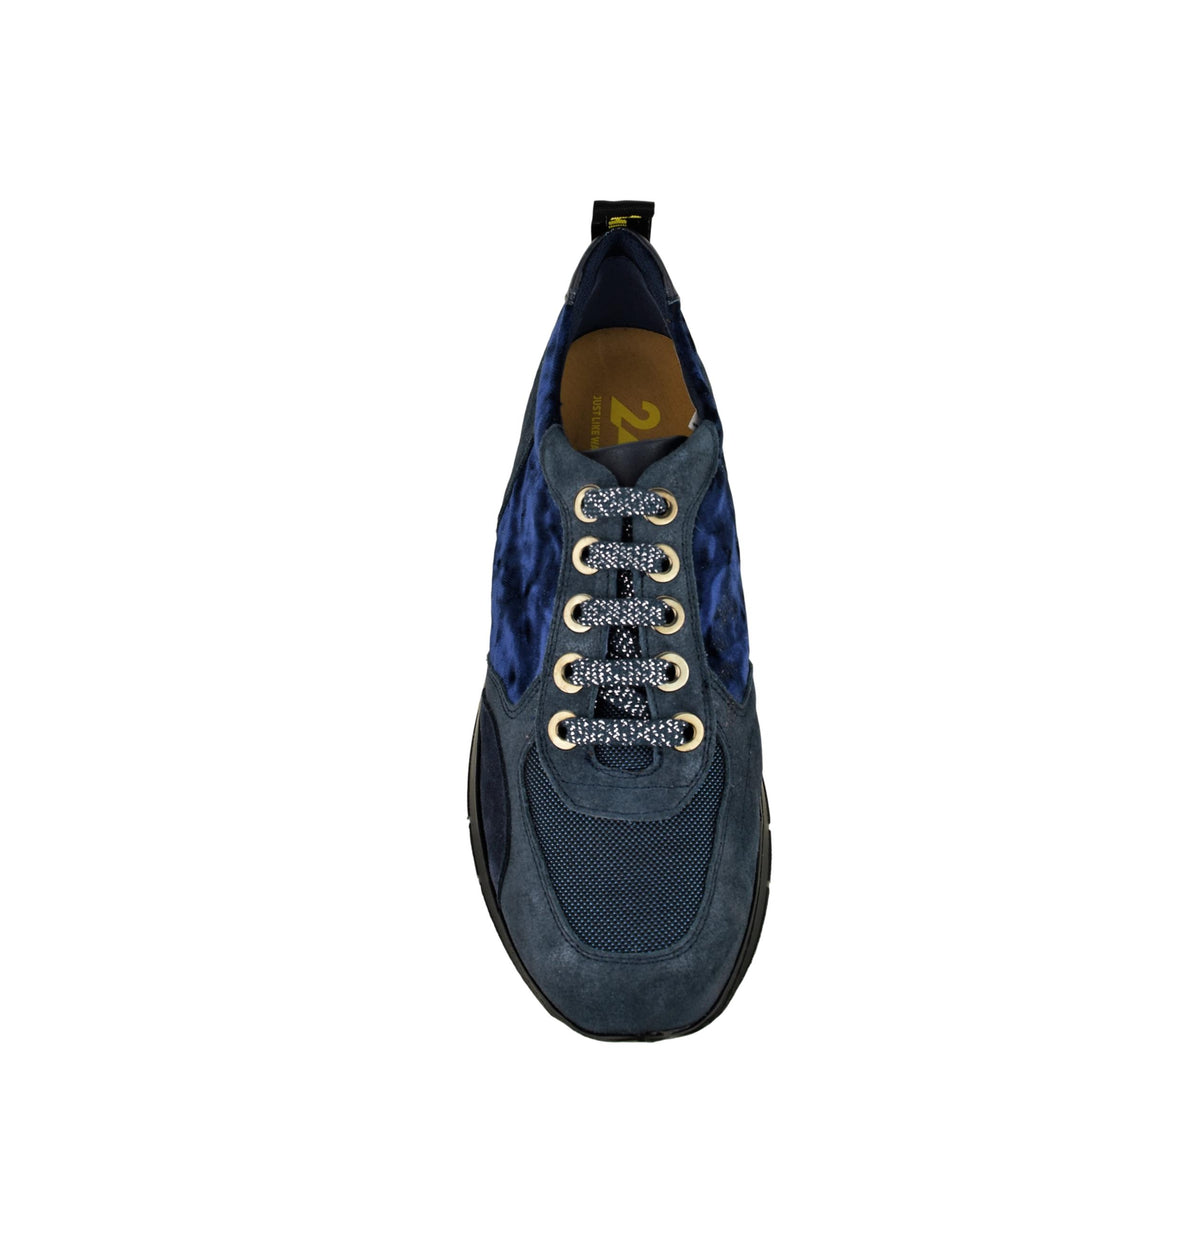 NOTTE - 24 Hrs Lace Up Navy